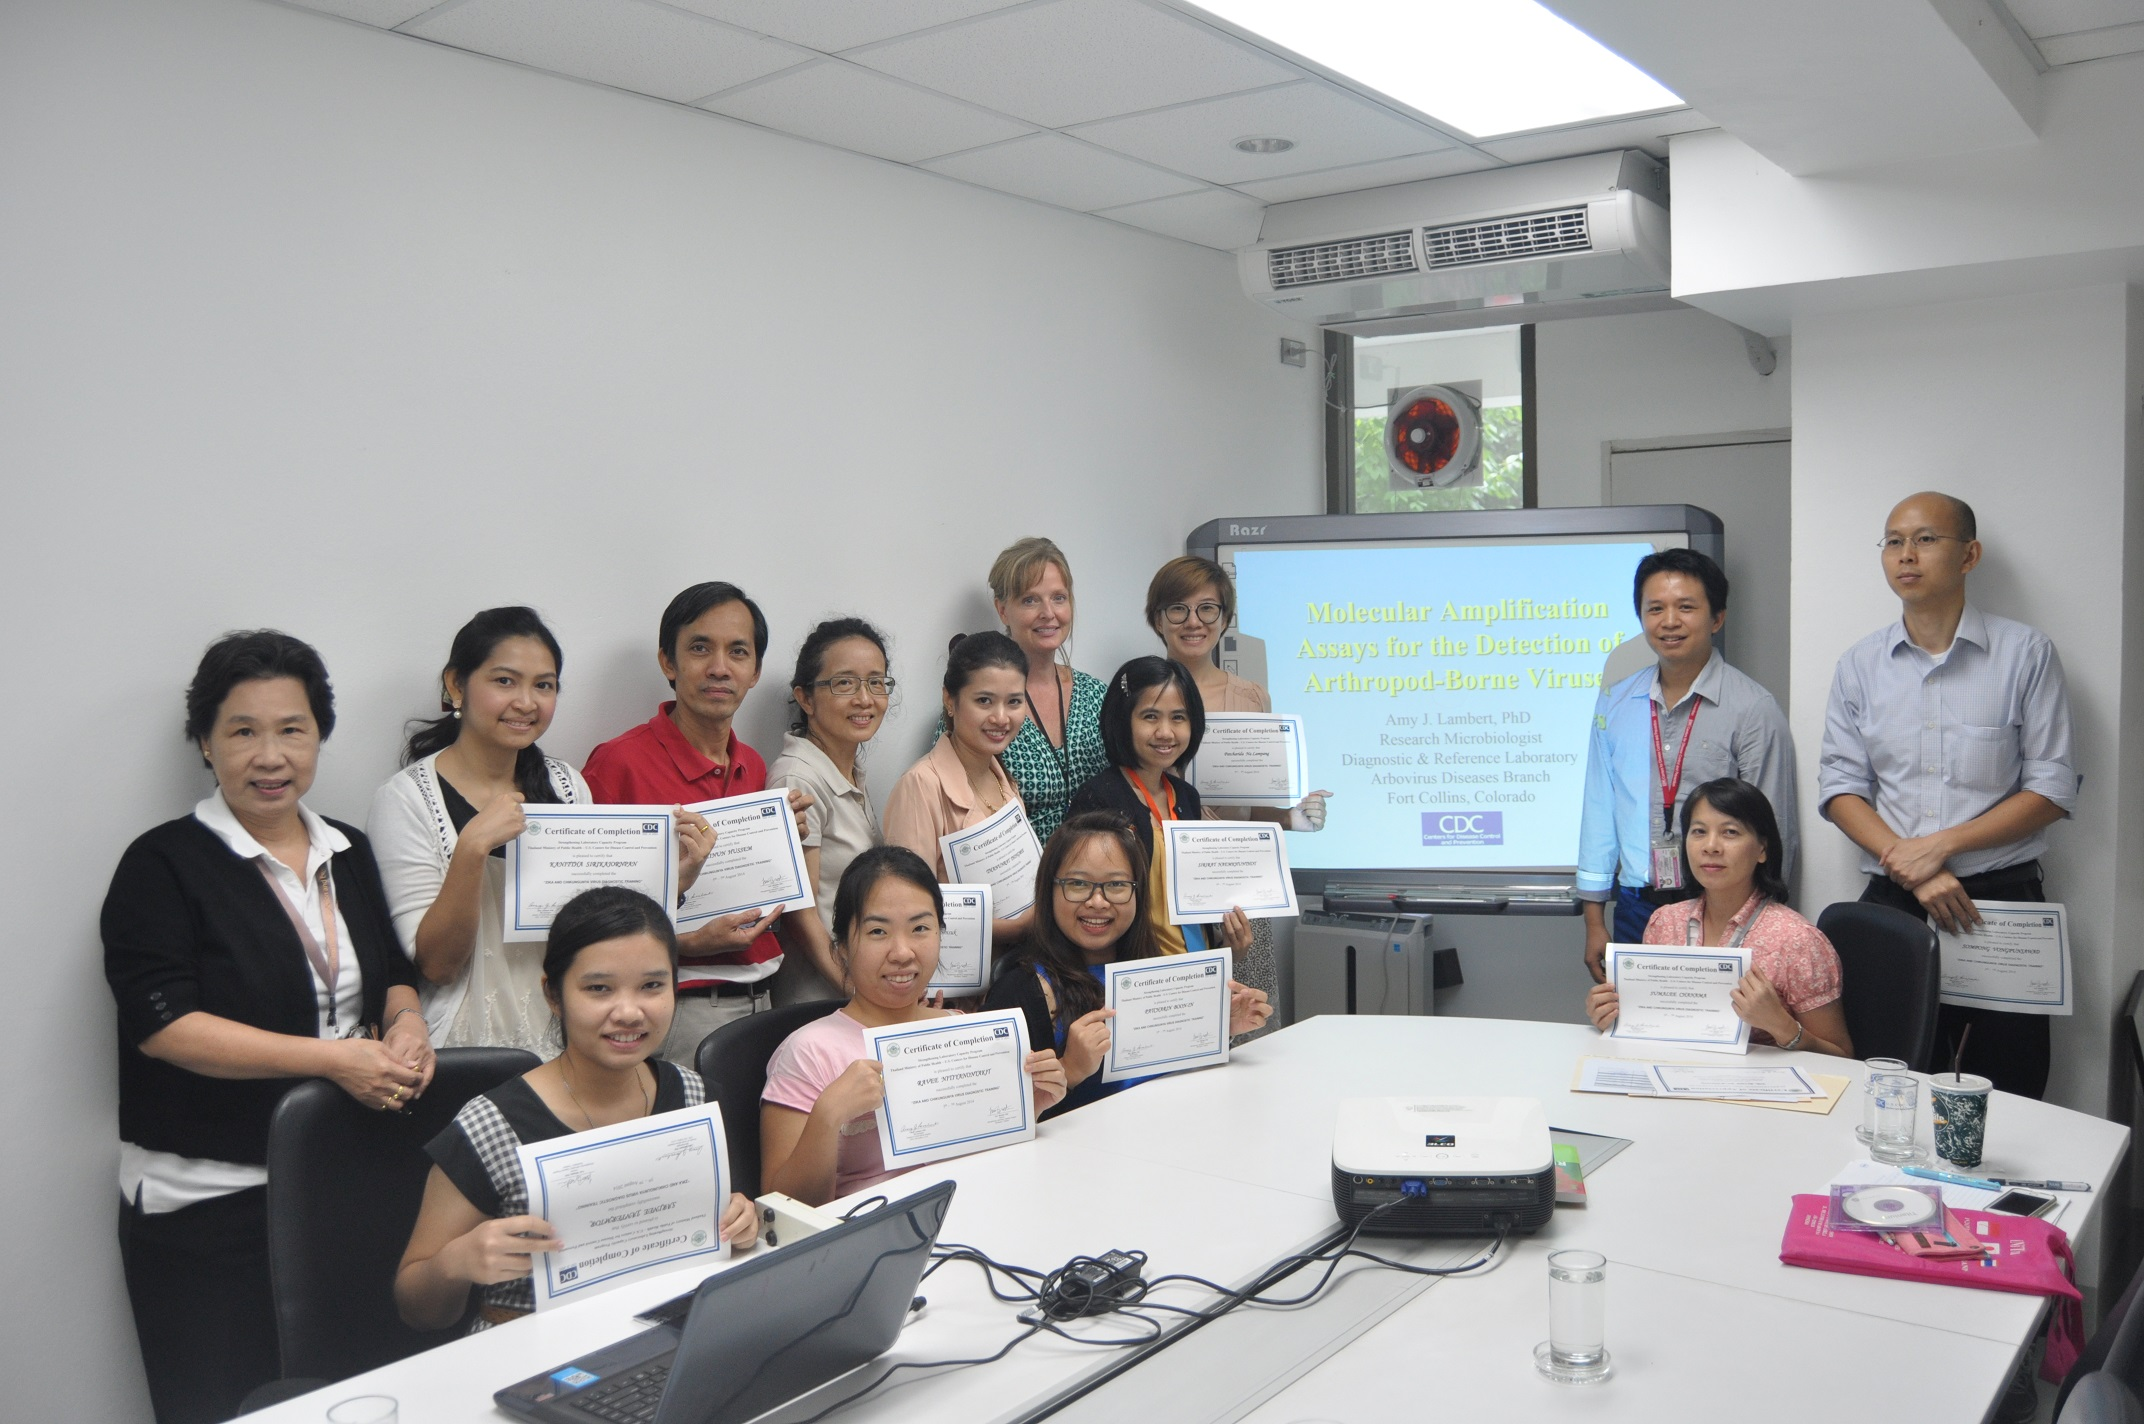 Laboratory workers from the National Institute of Health and Chulalongkorn University display certificates after successfully completing a training on how to identify Zika and Chikungunya viruses.